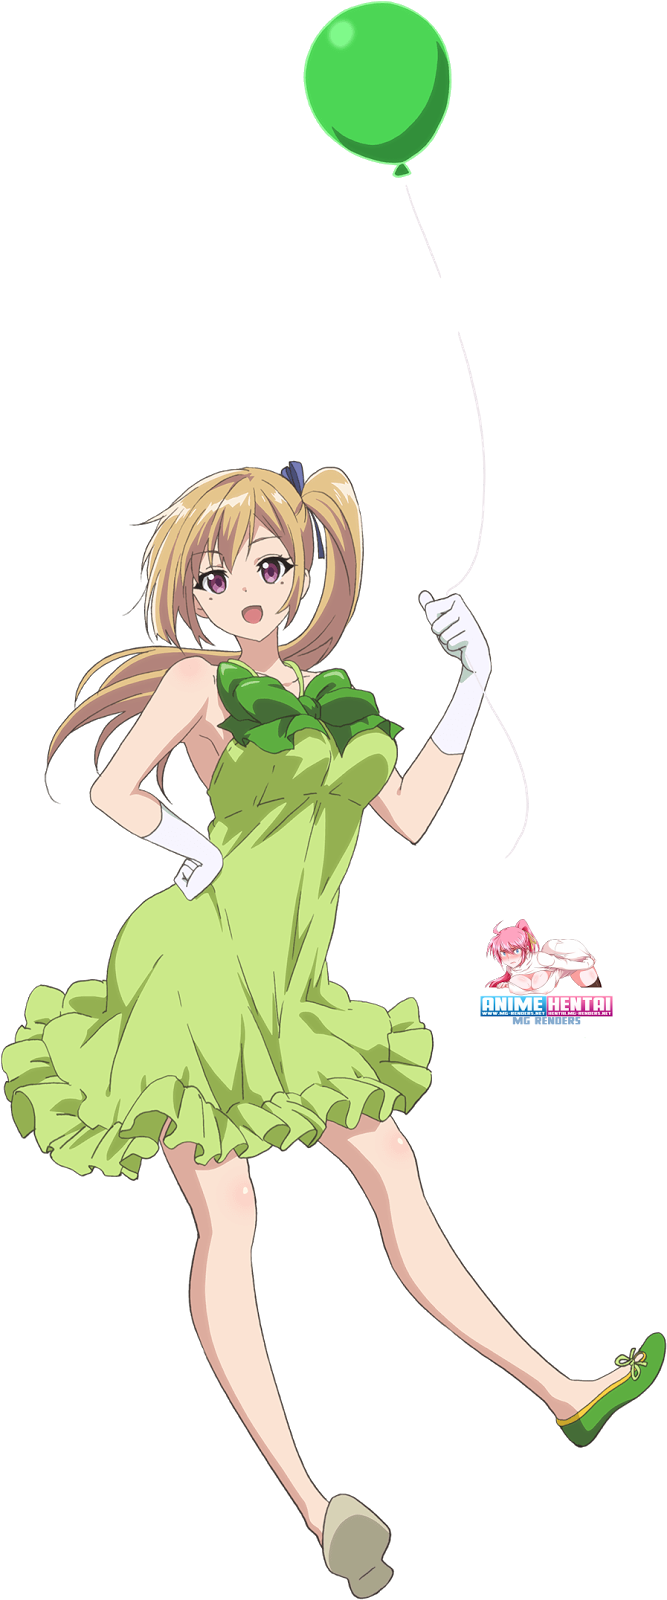 Tags: Anime, Render,  Dress,  Kawakami Mai,  Musaigen no Phantom World,  PNG, Image, Picture